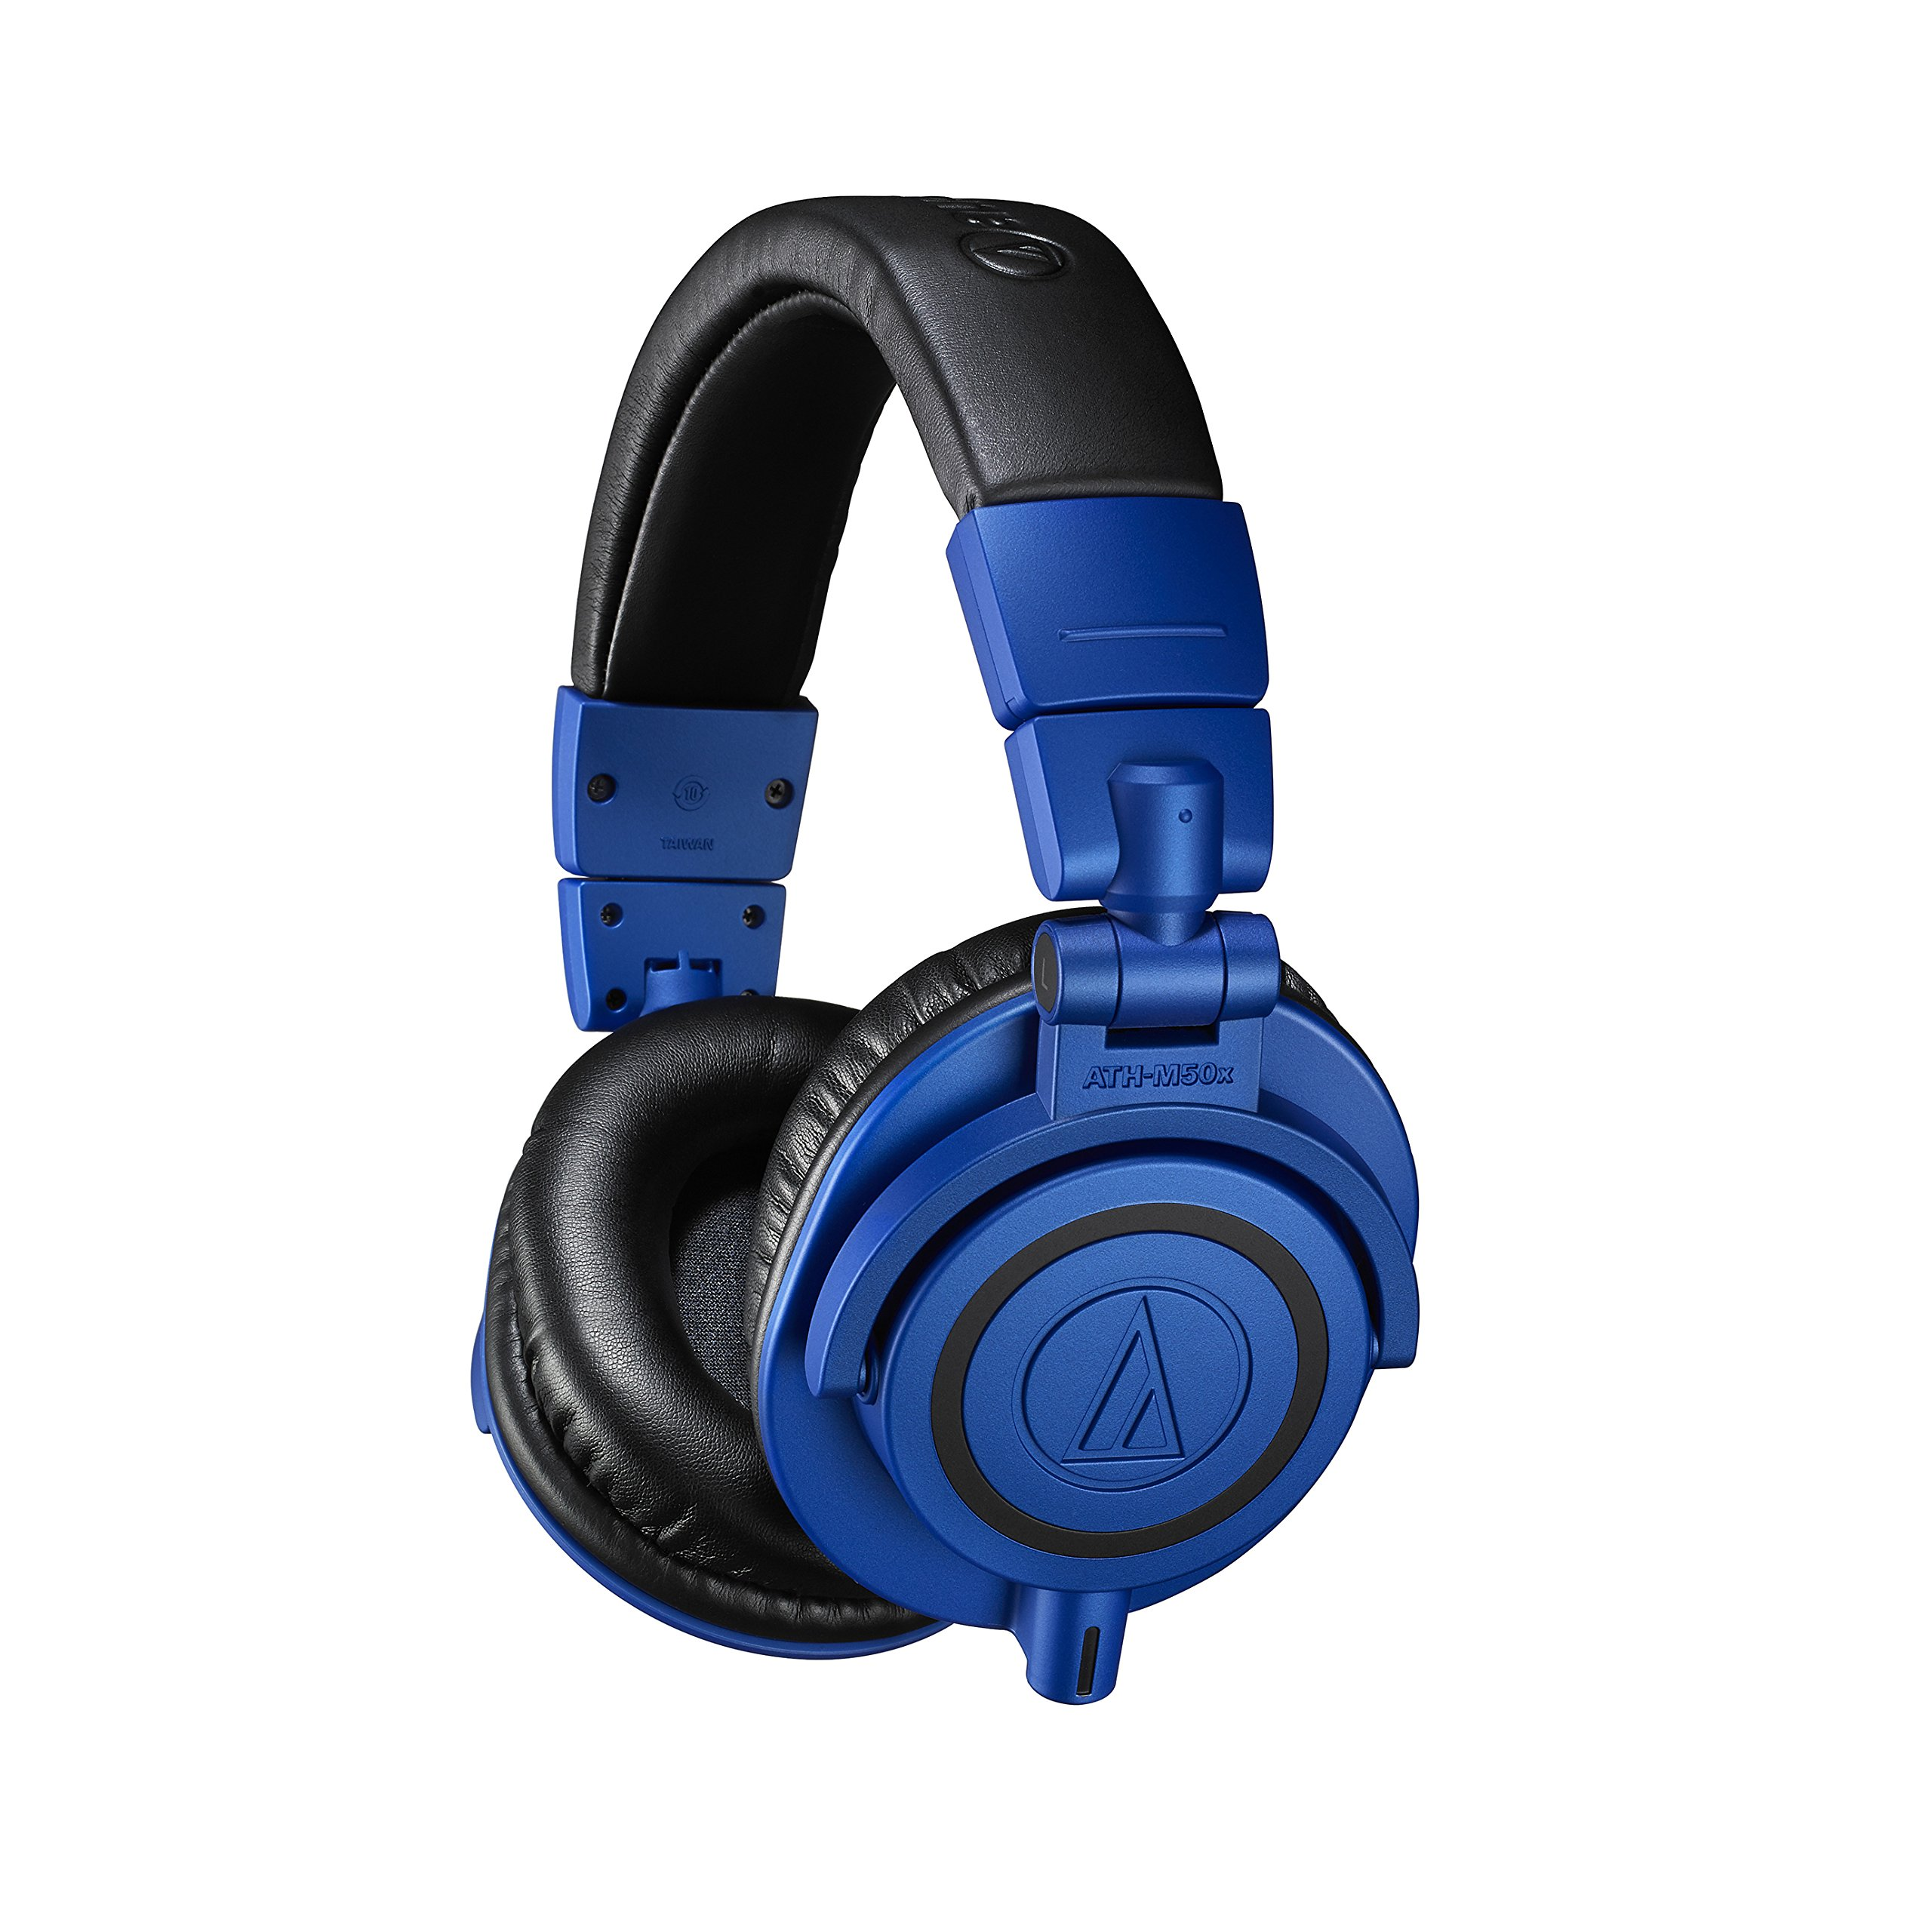 Audio Technica ATH-M50xBB Professional Monitor Headphones, Blue & Black